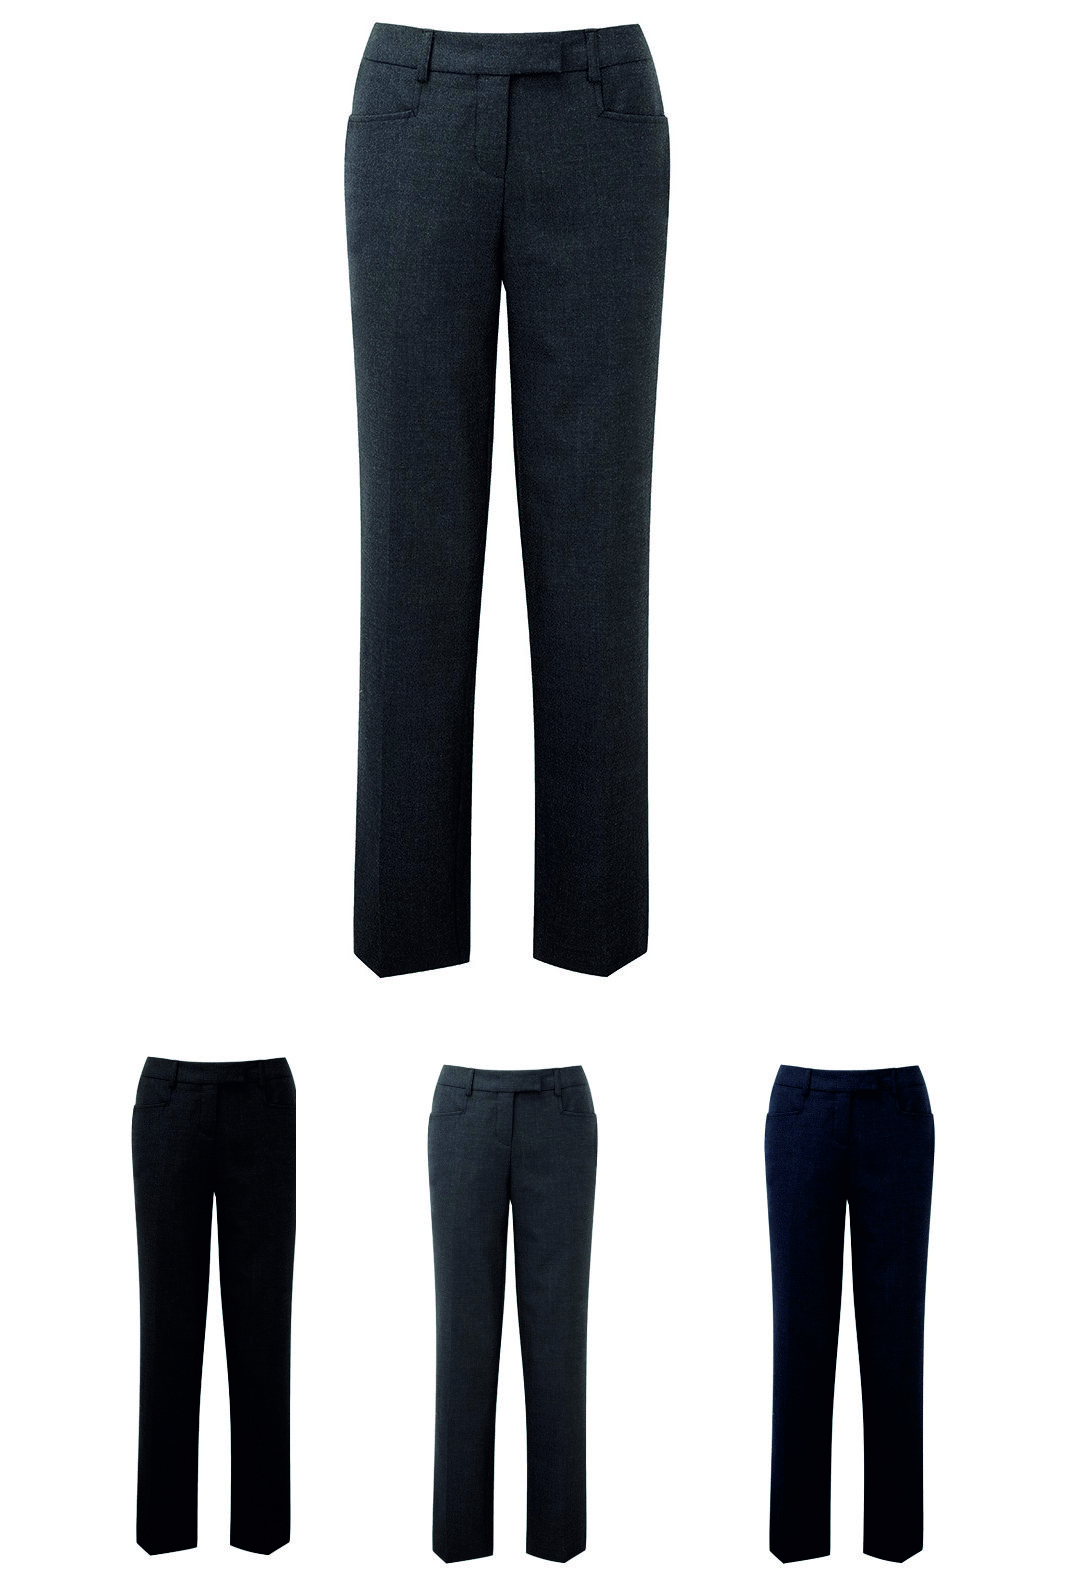 NF602 Assured Women's Single Pleat Trousers